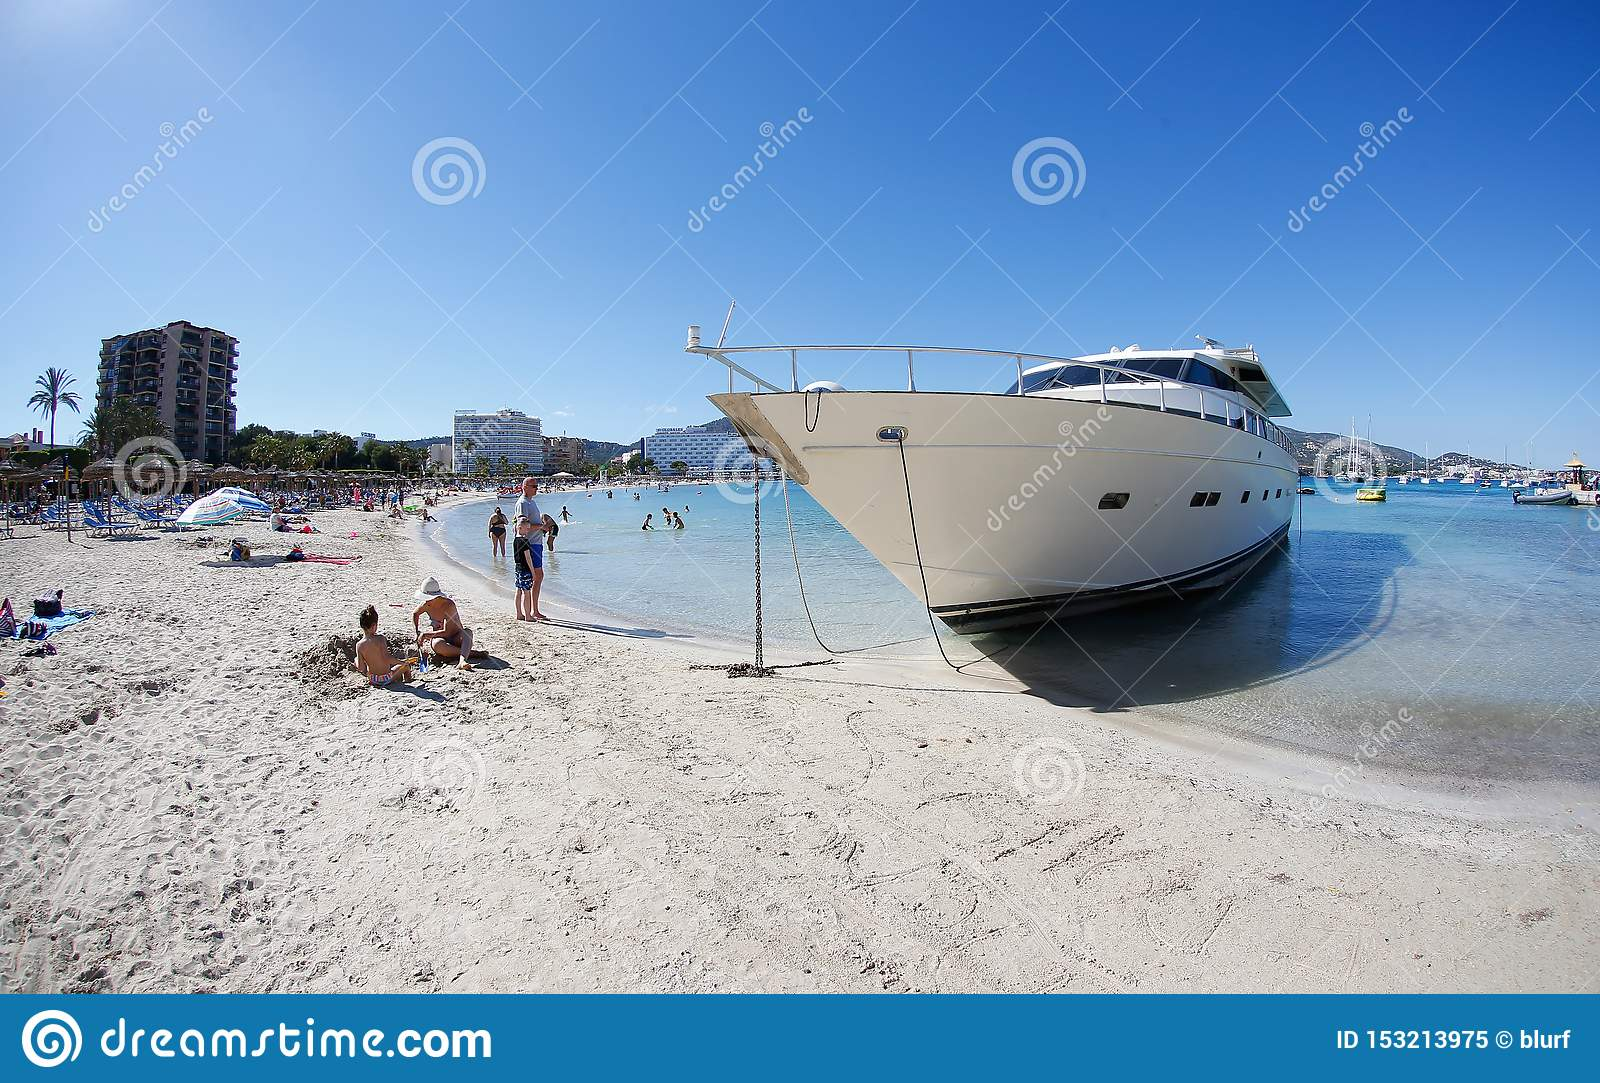 https www dreamstime com luxury yacht wrecked sand son matias beach palmanova last march strong storms caused wreckage then image153213975